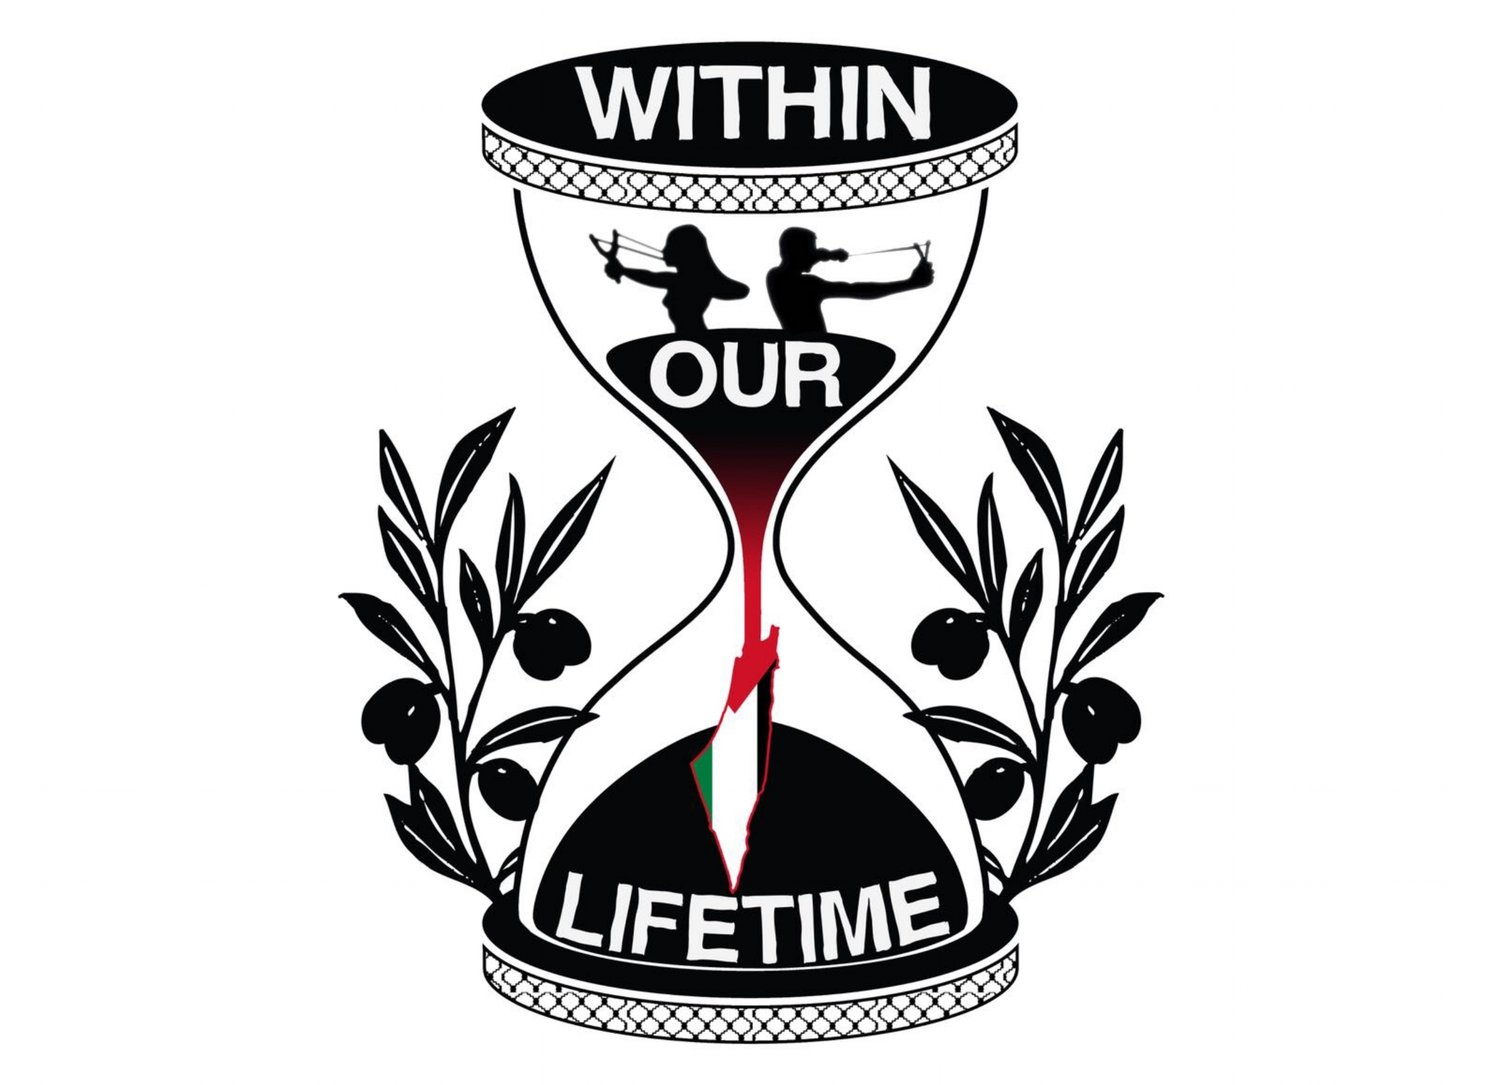 Within Our Lifetime